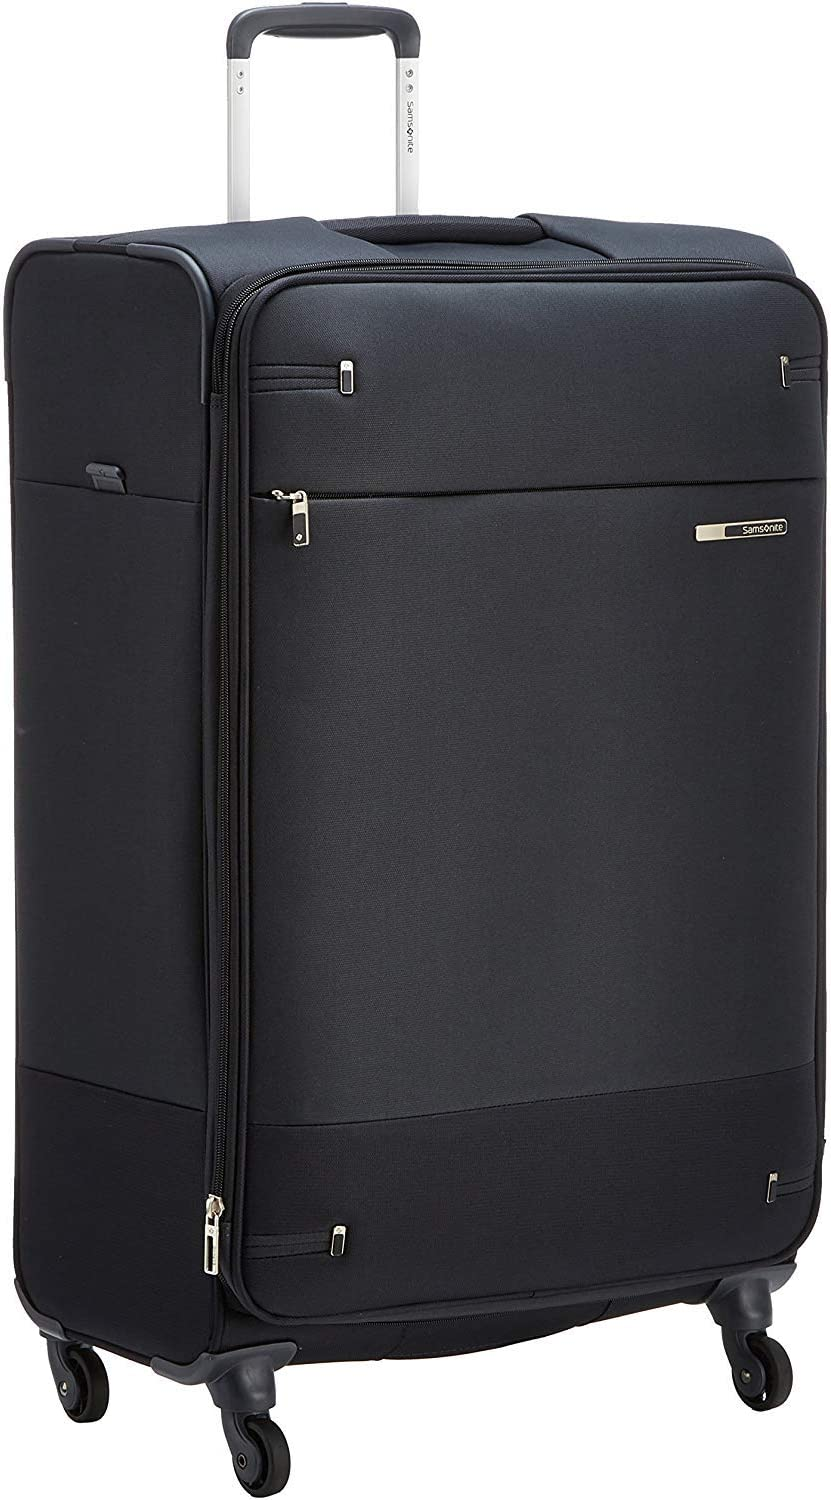 Samsonite - Base Boost - Spinner Maleta 78 cm, 113 L, Negro